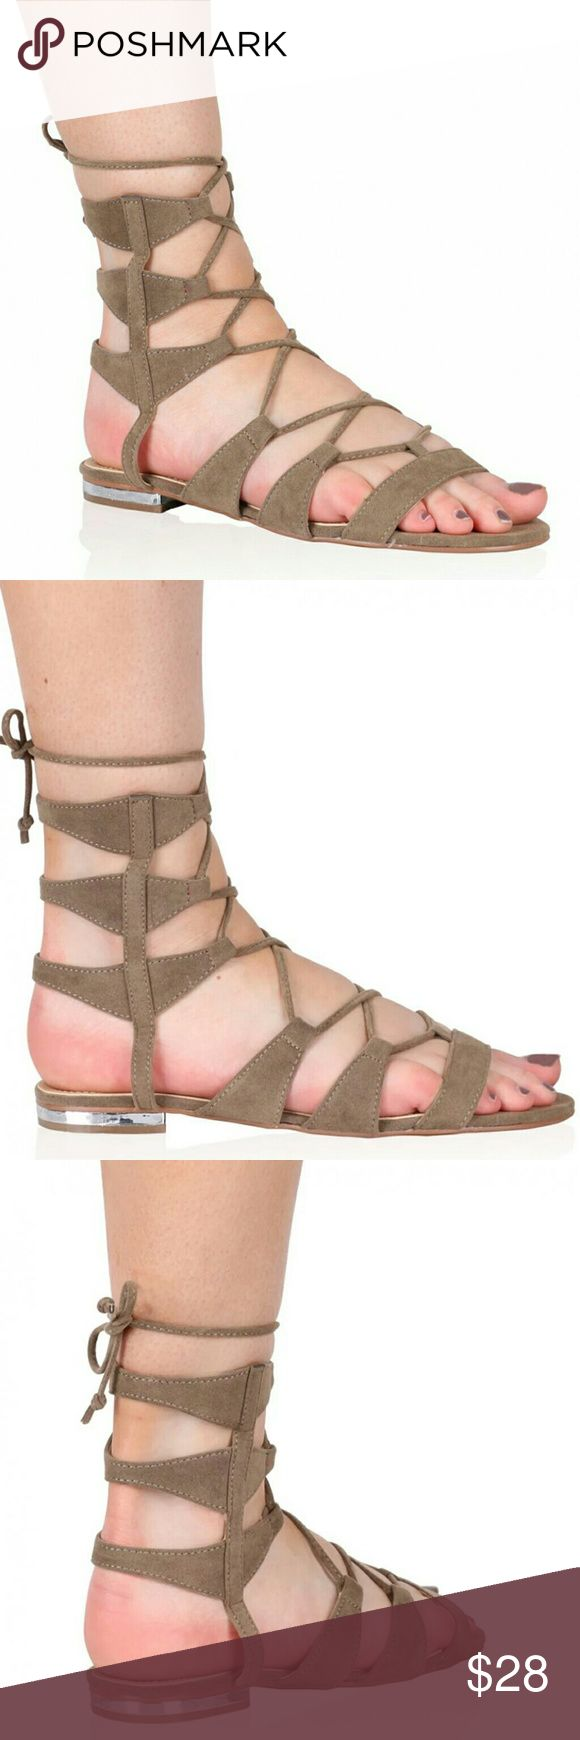 Taupe flat gladiator sandals Flat gladiator lace up sandals. Taupe faux suede. New in box. PD Shoes